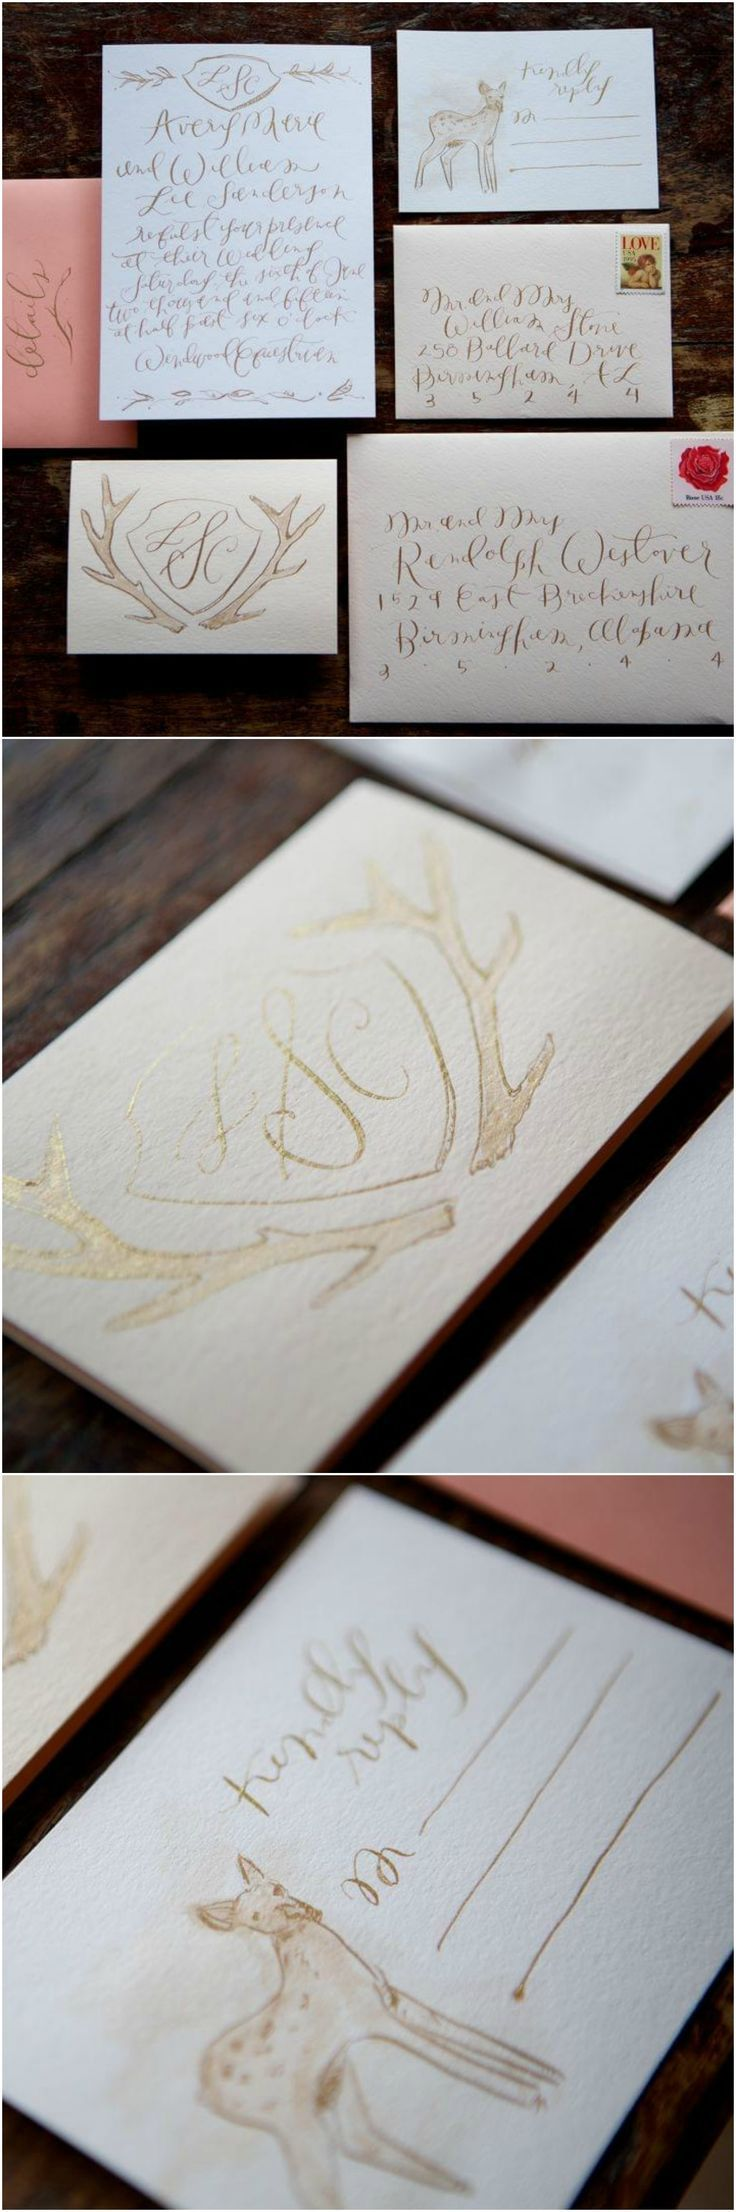 custom wedding invitations nashville%0A Pink  u     gold  wedding invitation suite  deer  antlers  cursive monogram